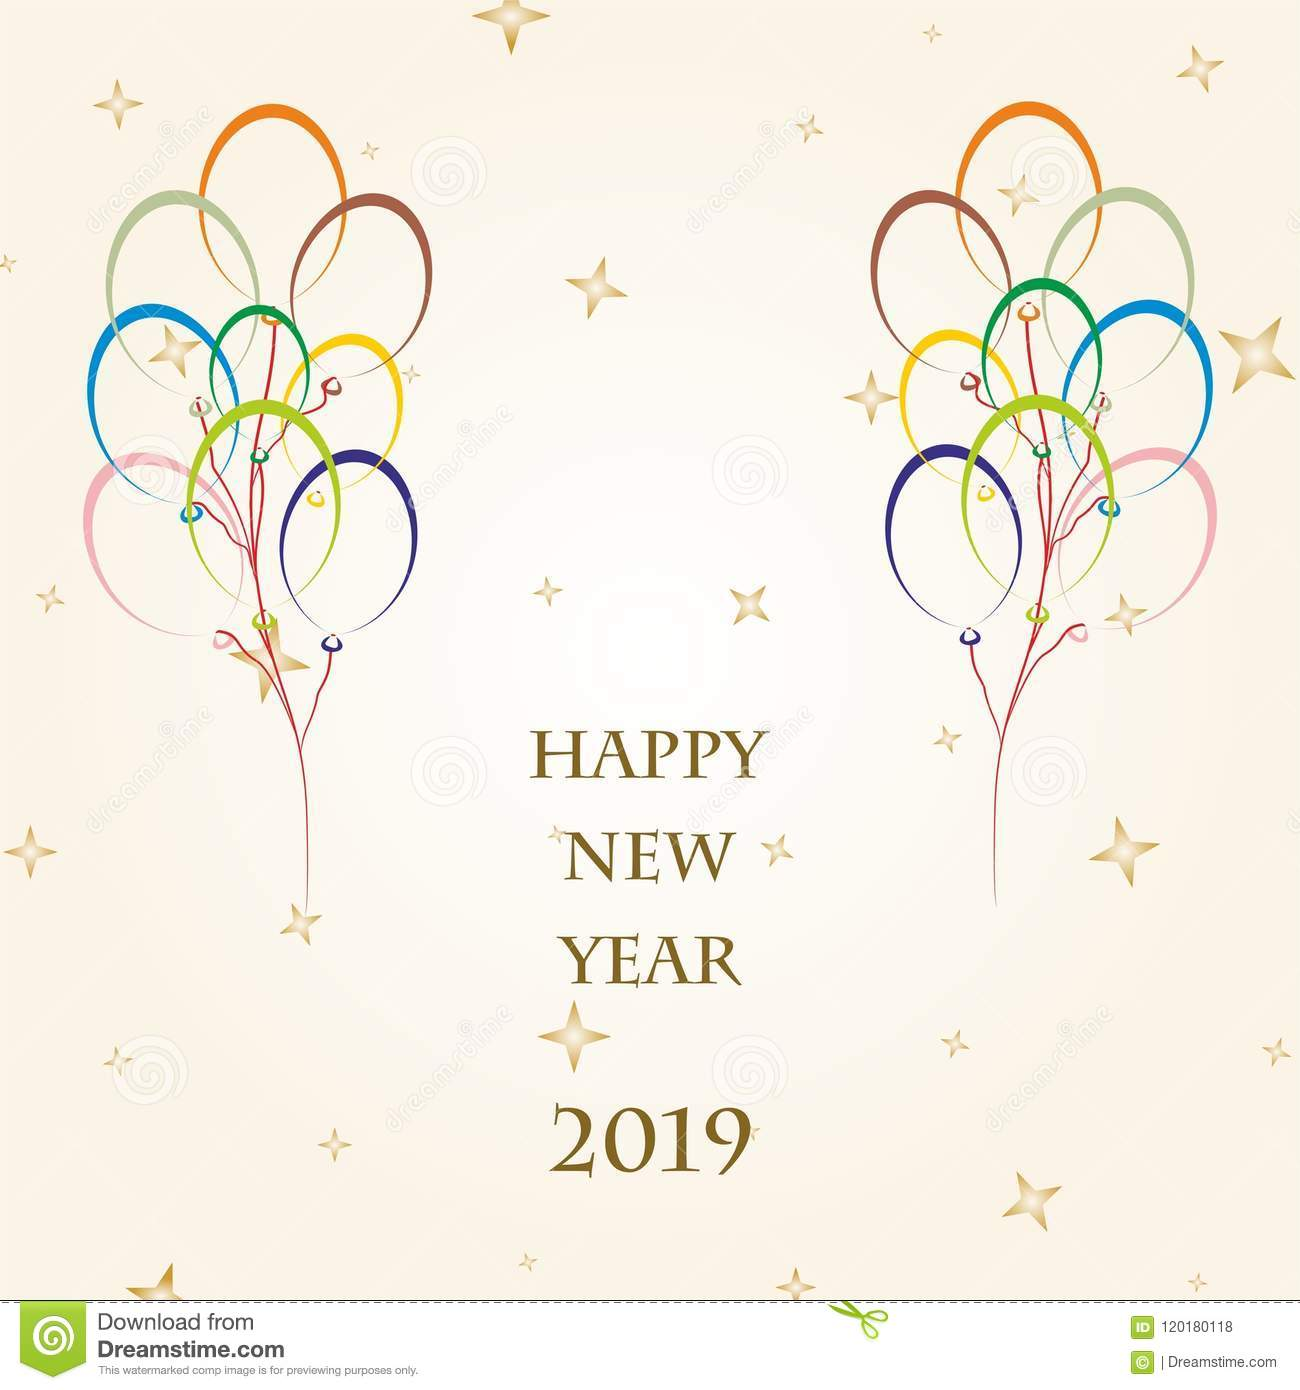 New Year Greetings For 2019 With Colorful Balloons Flying On A Gold